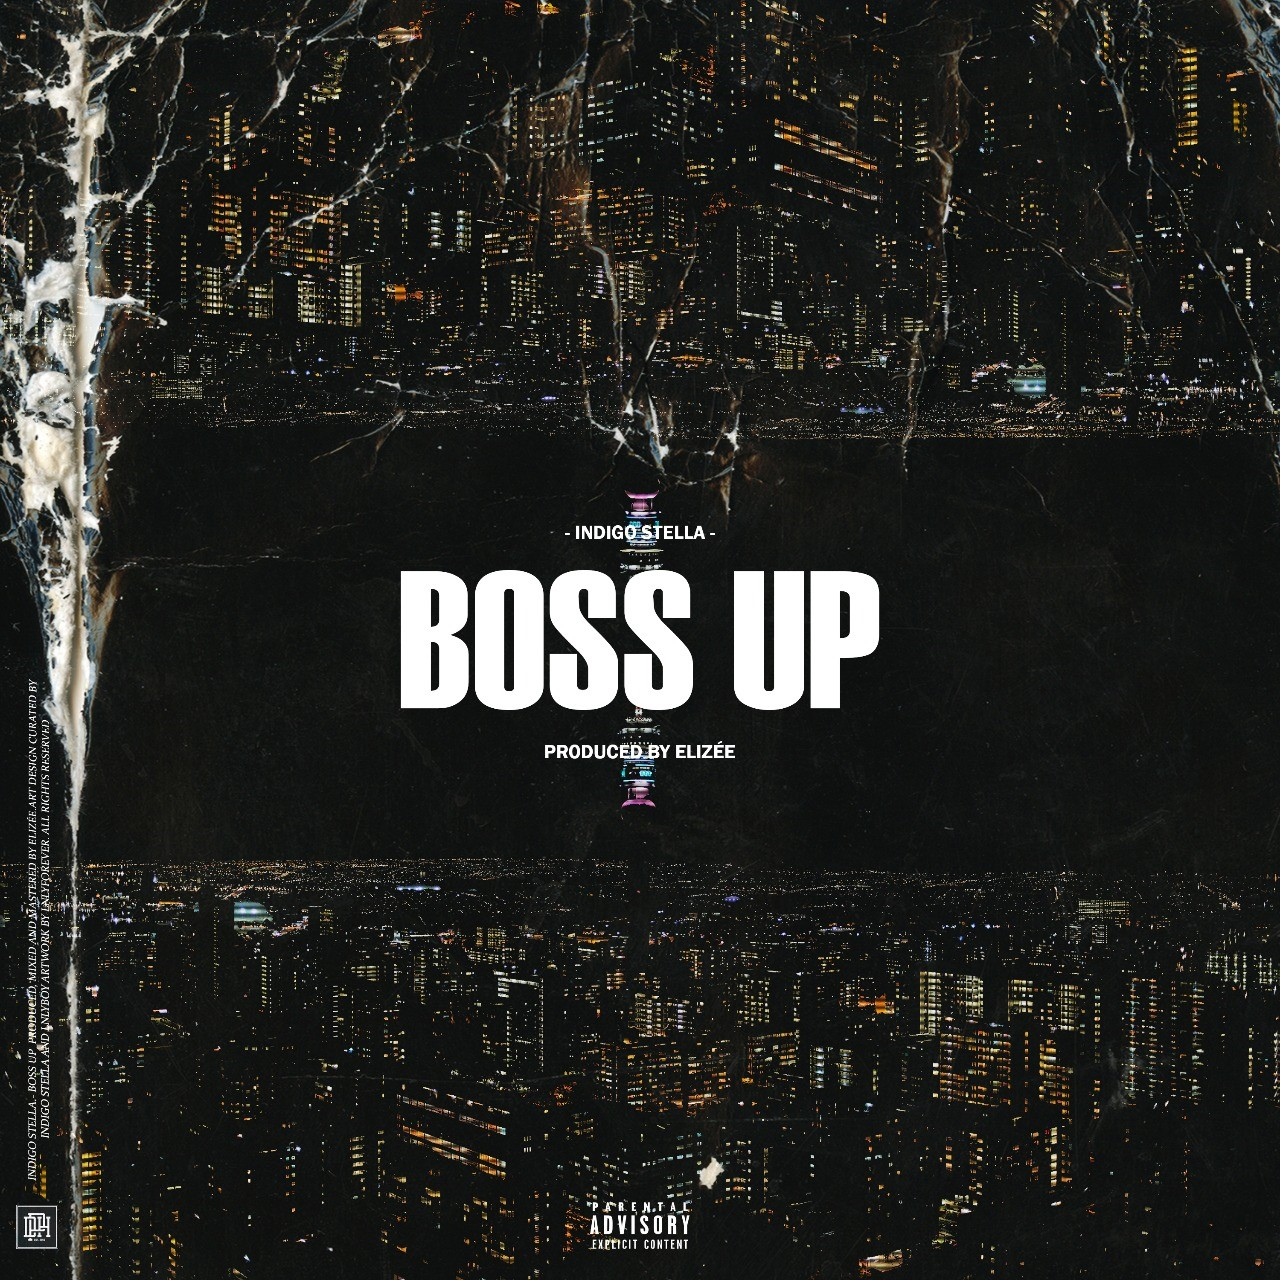 inidigo stella Listen To Indigo Stella's New 'BOSS UP' Banger boss